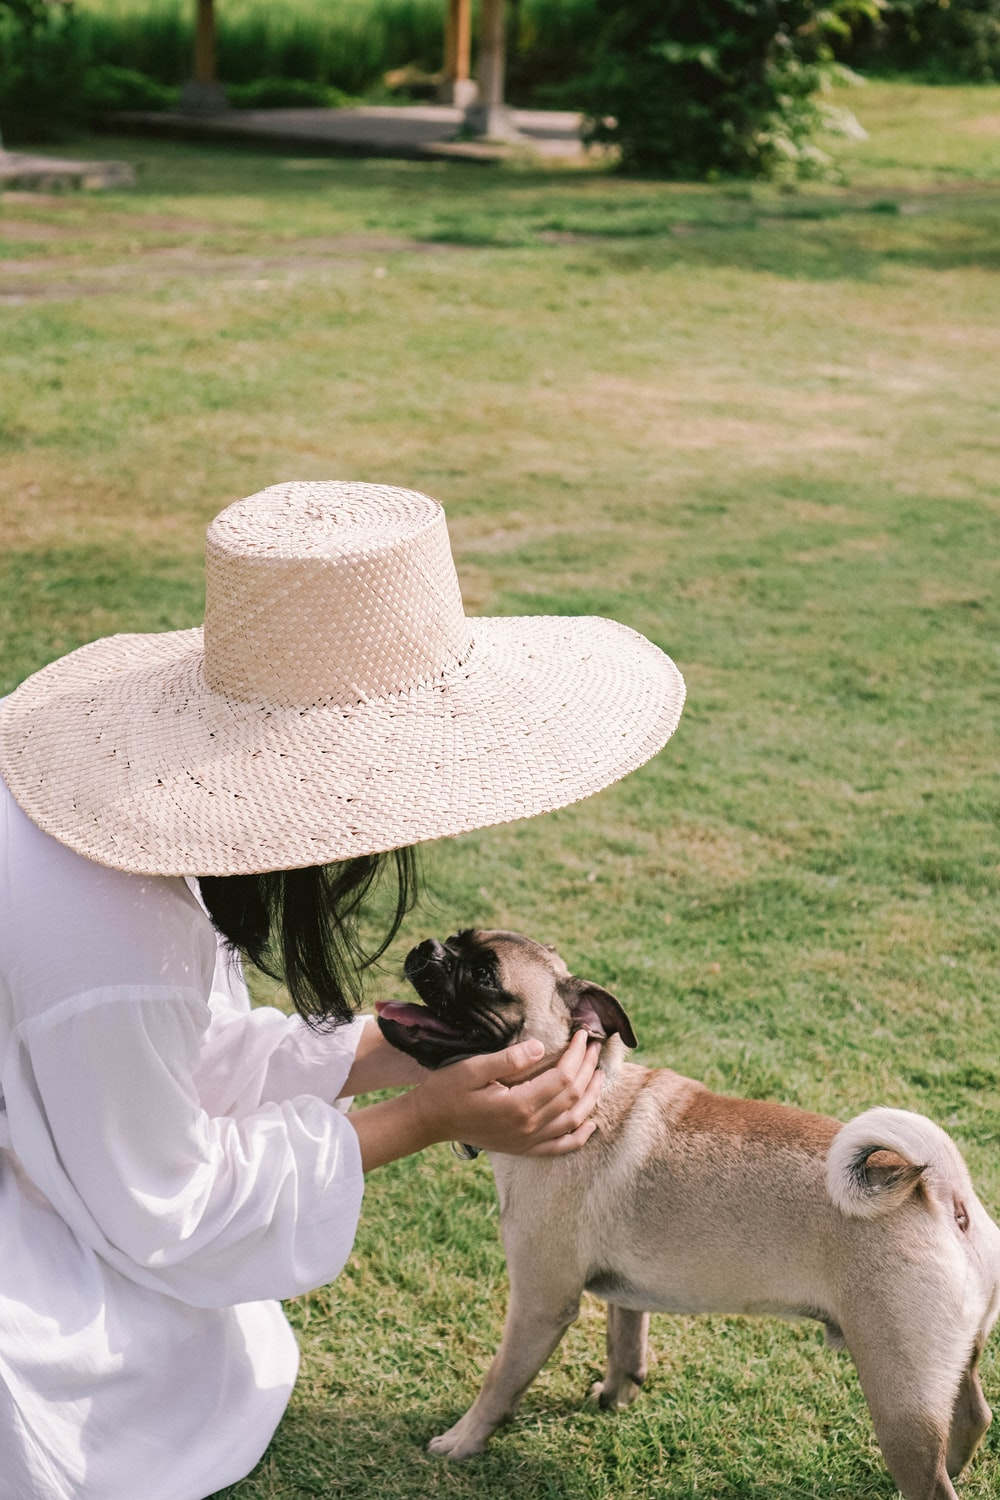 fawn pug wearing white hat